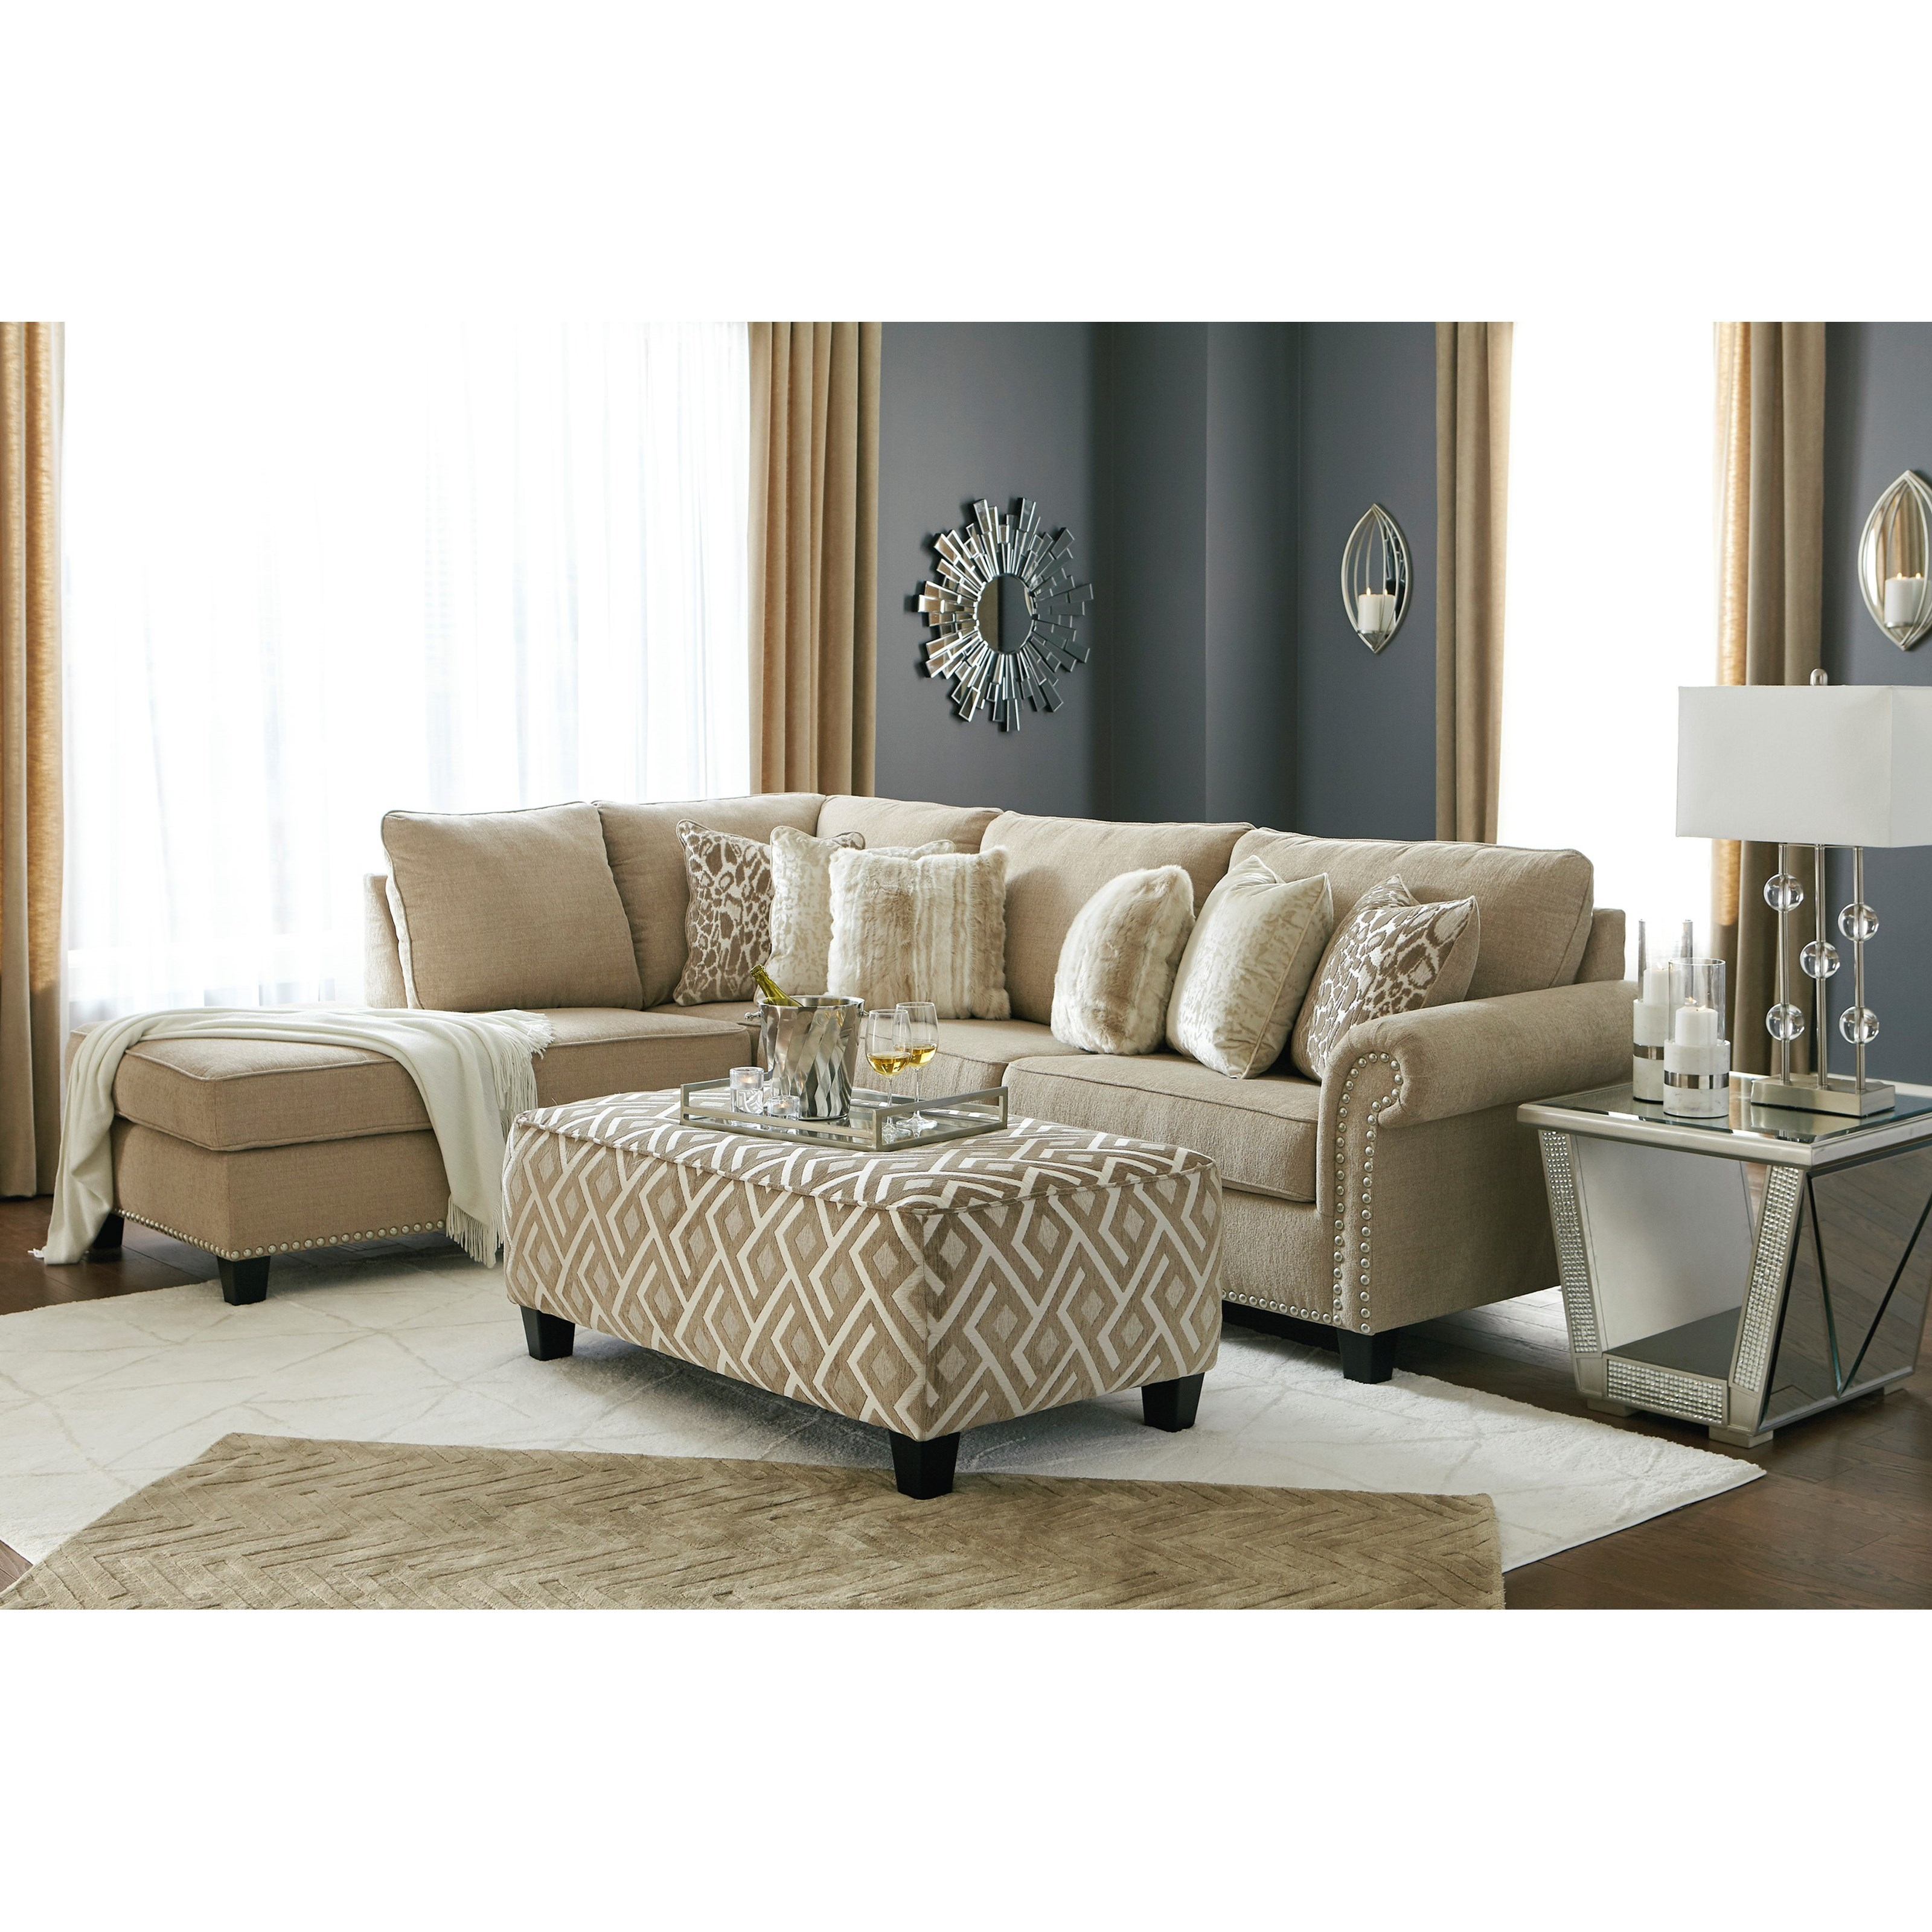 Dovemont Living Room Group by Ashley (Signature Design) at Johnny Janosik